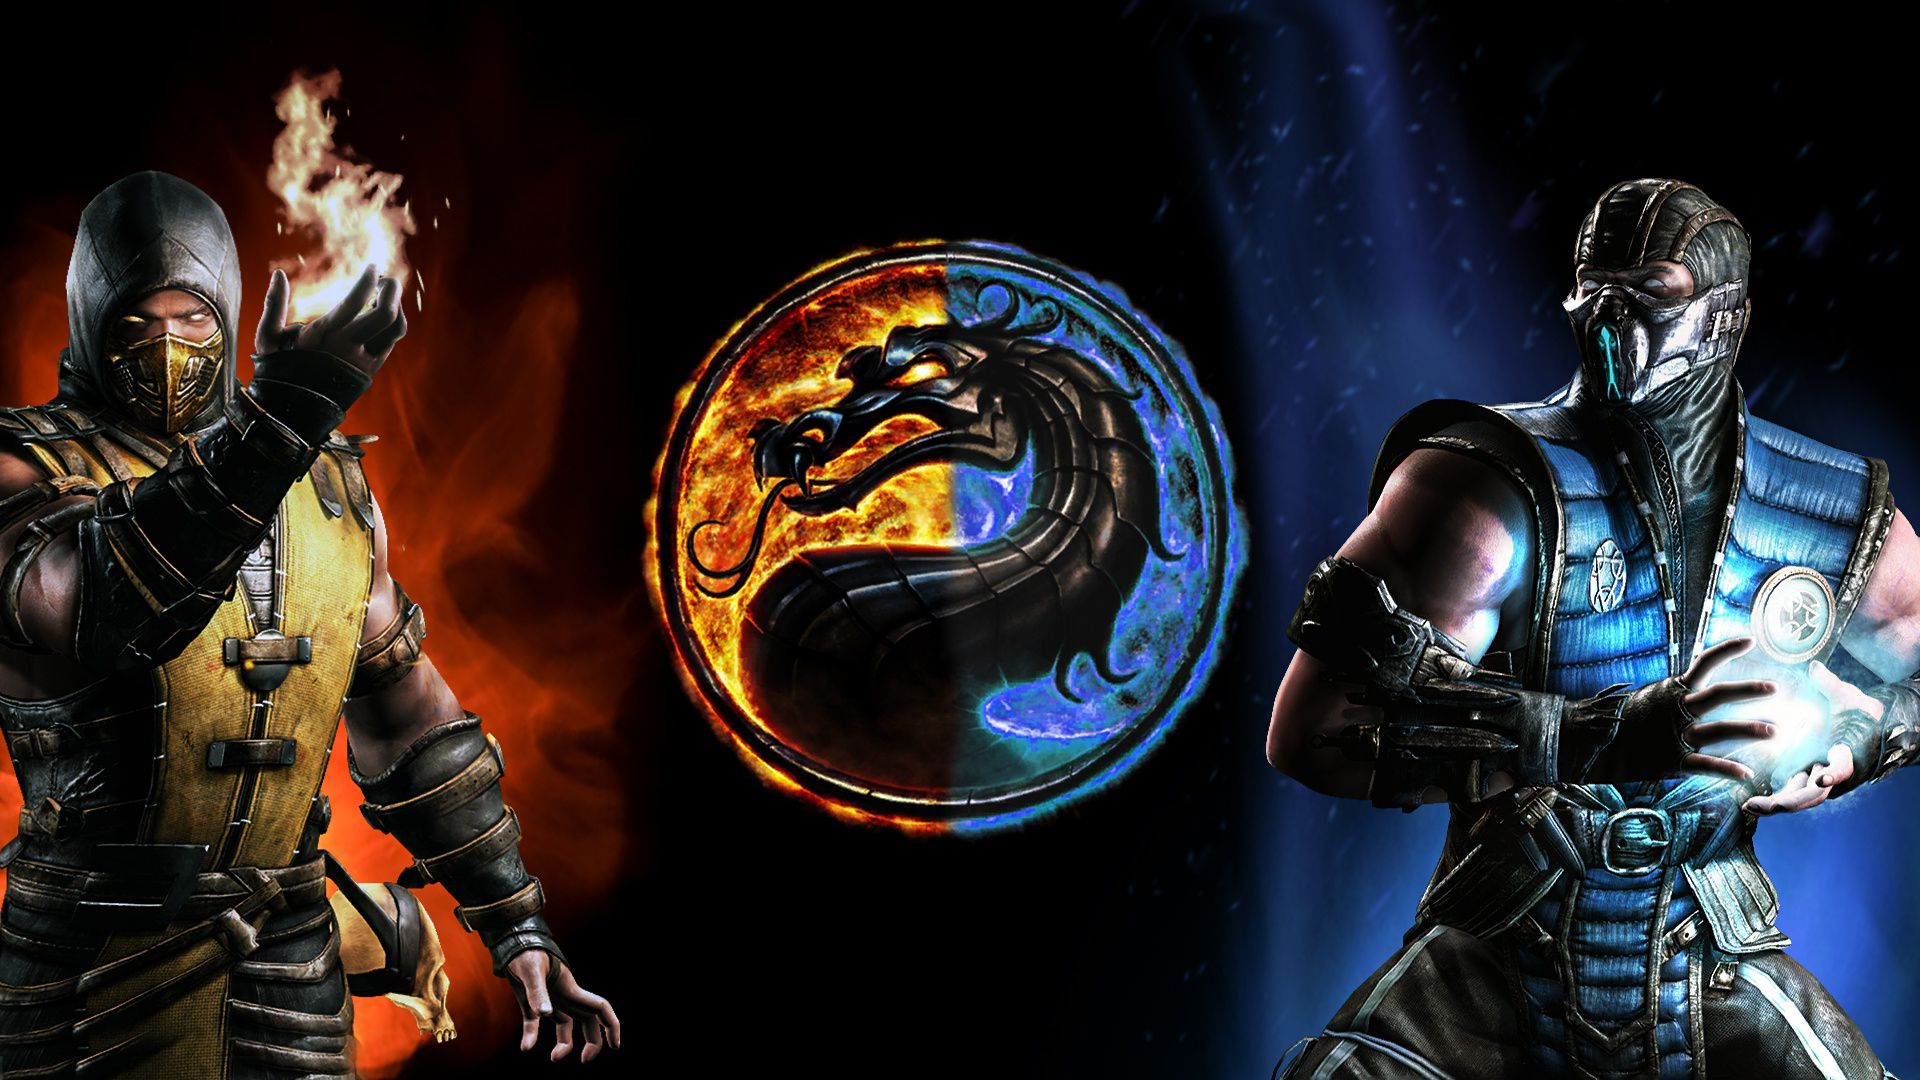 Mortal Kombat Scorpion Vs Sub Zero Wallpapers Top Free